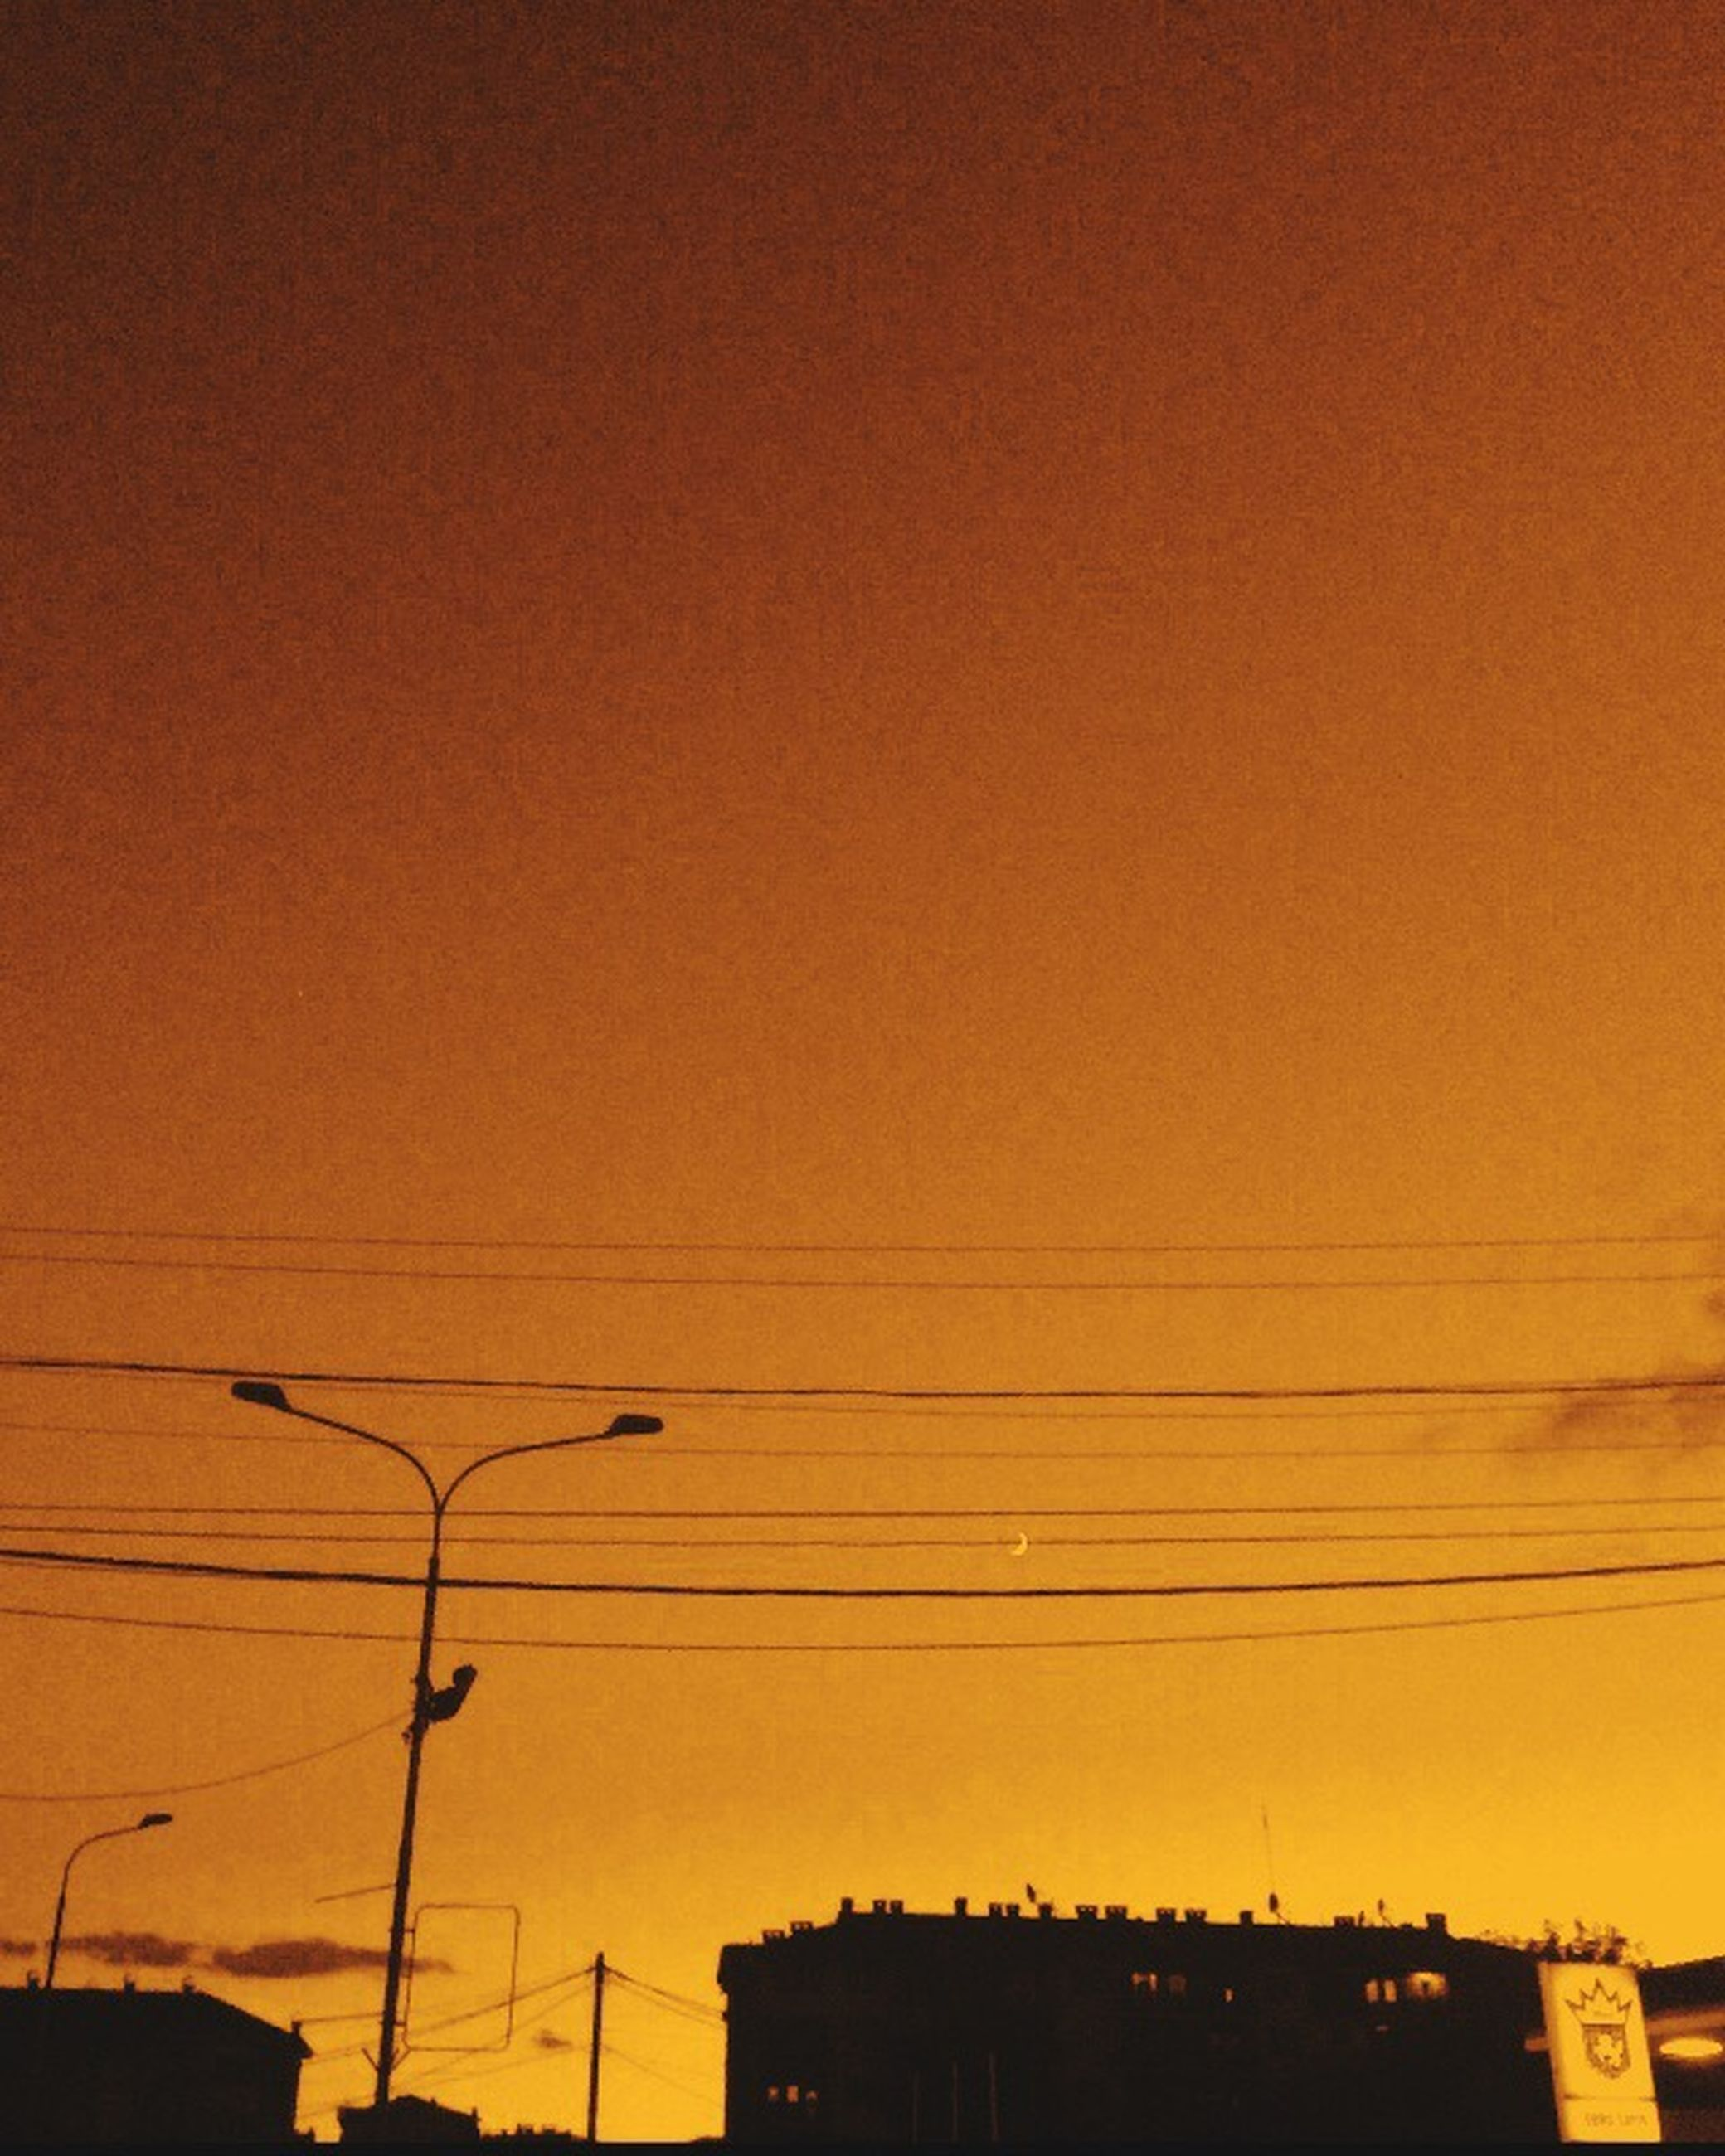 sunset, power line, architecture, built structure, low angle view, orange color, cable, sky, power supply, building, city, power cable, outdoors, no people, high section, nature, beauty in nature, dark